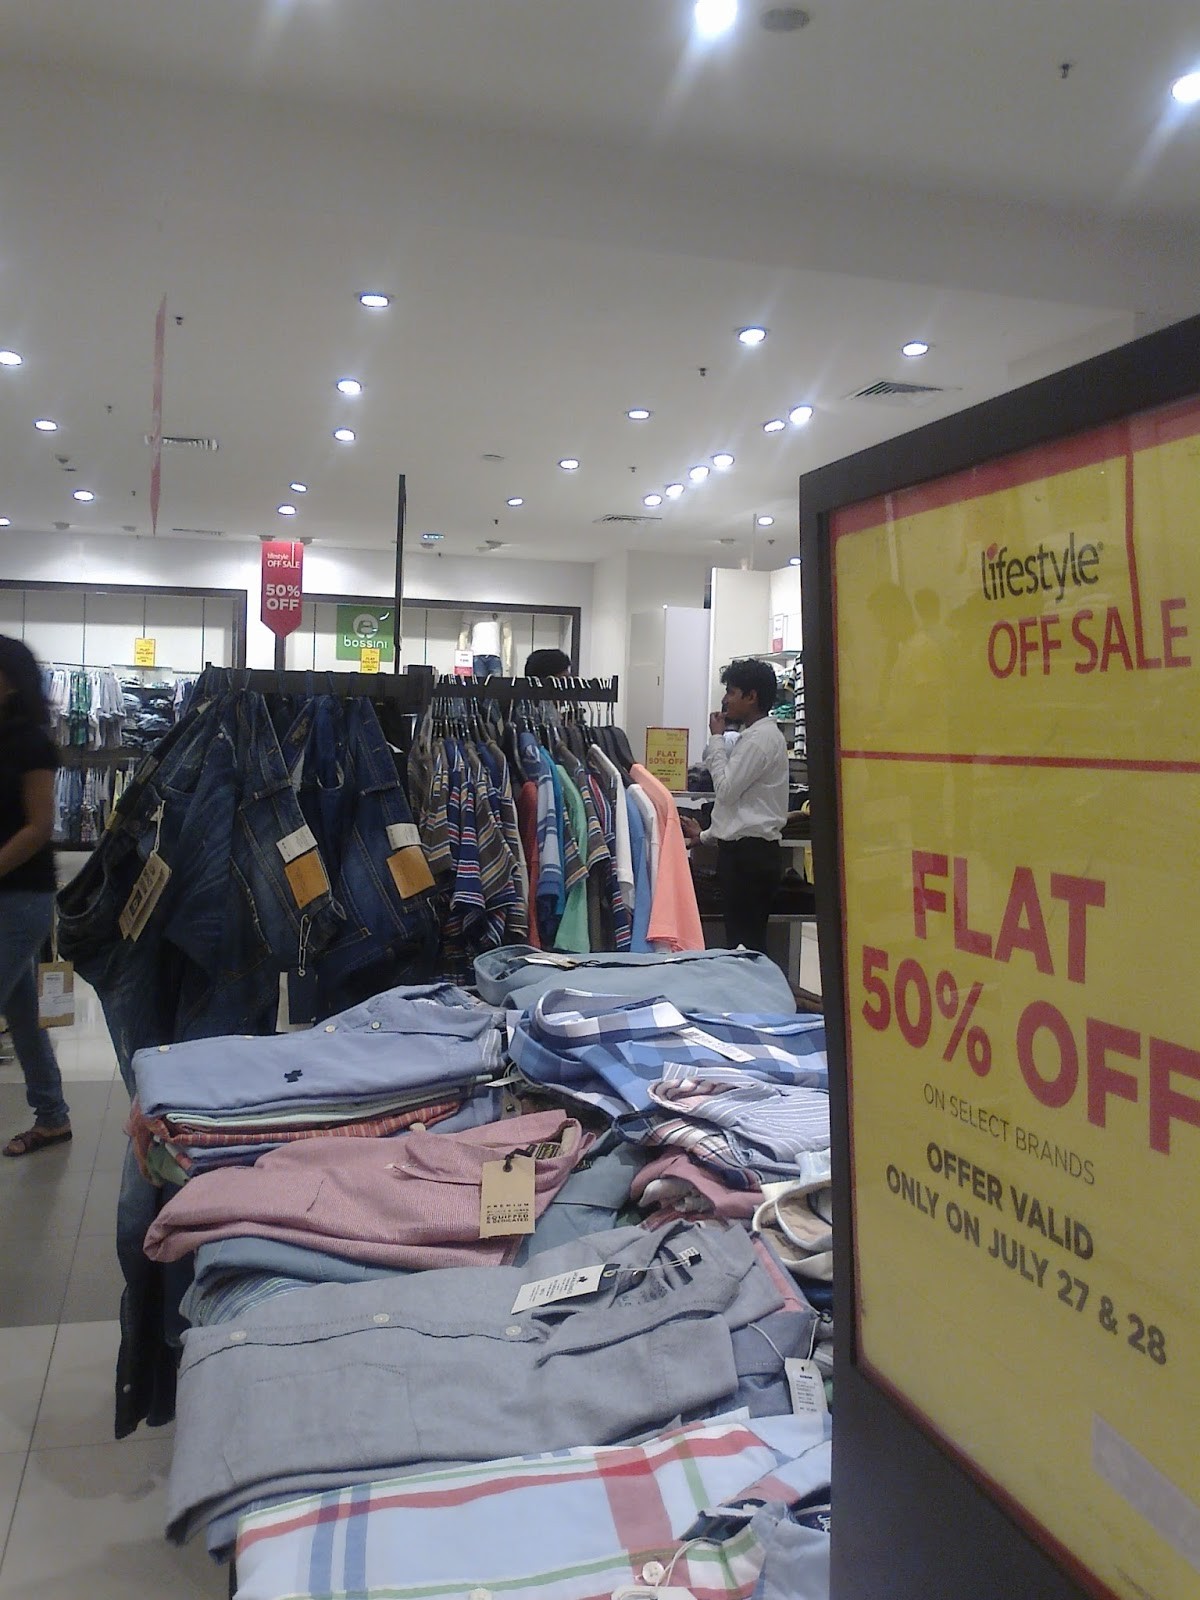 Sale at a Noida Shopping Mall